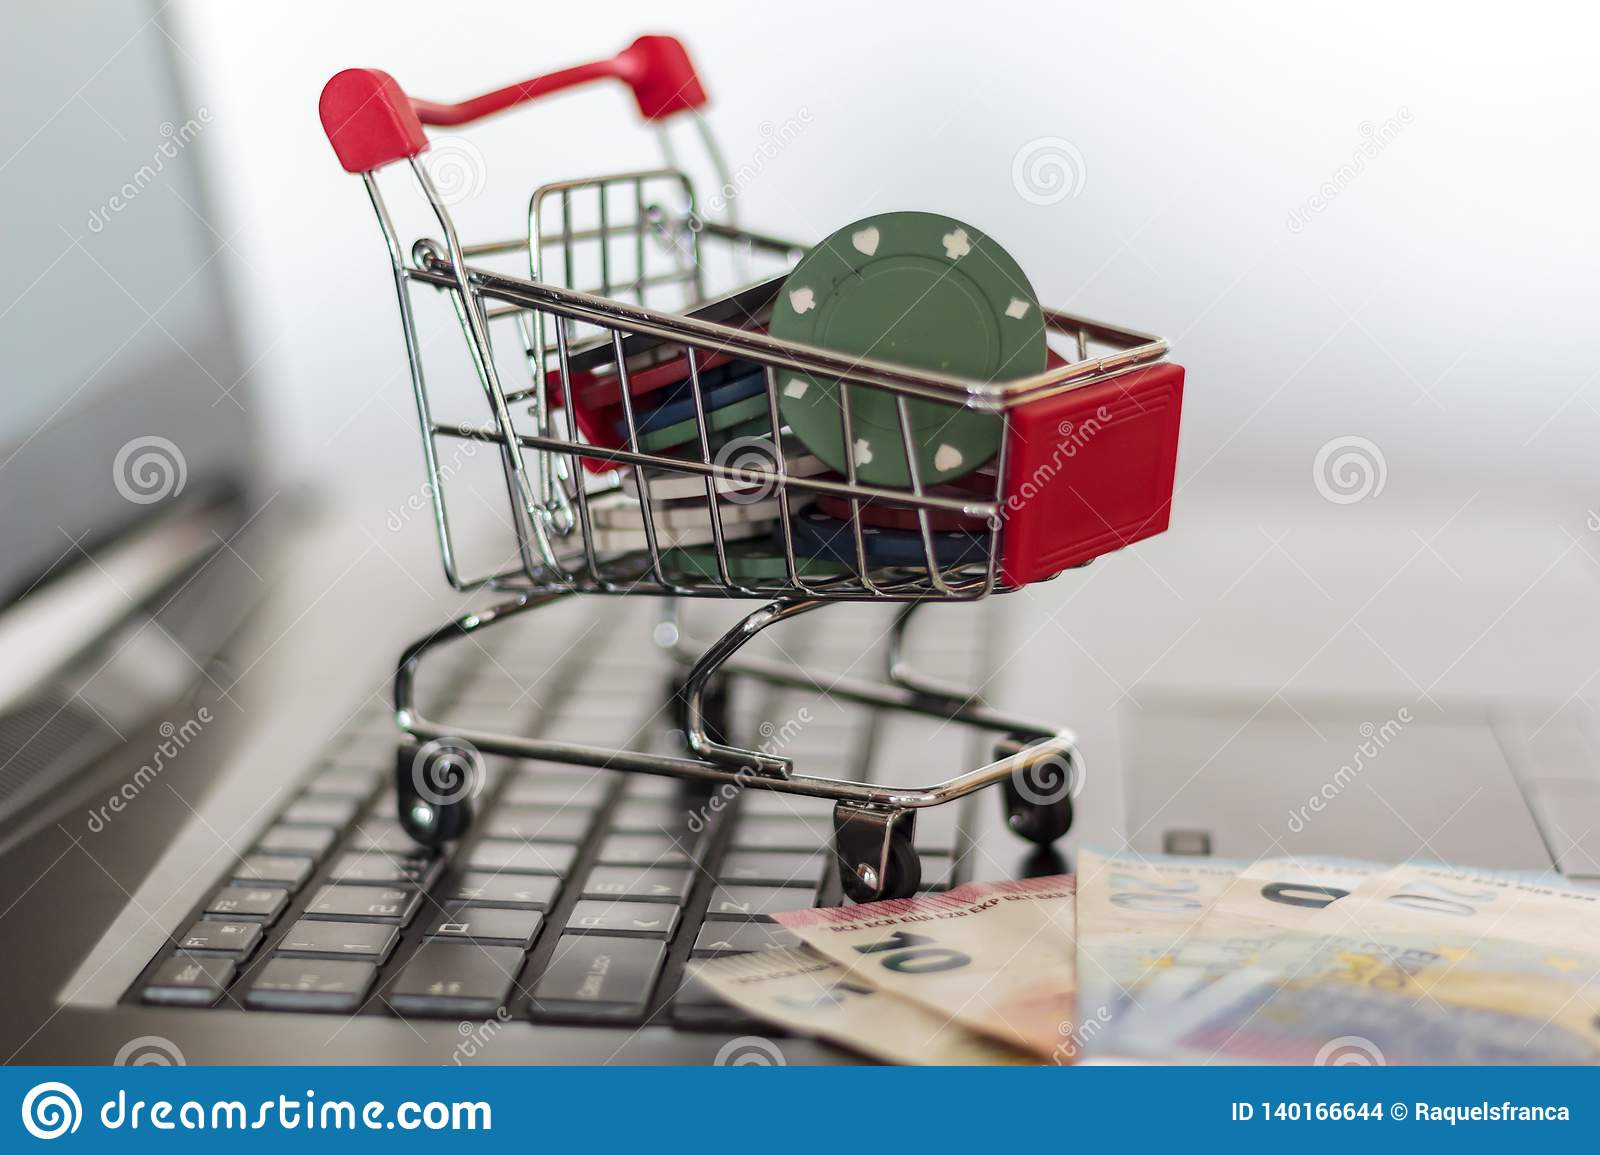 Poker chips in a trolley and euro banknotes on a computer. Online Gambling addiction concept